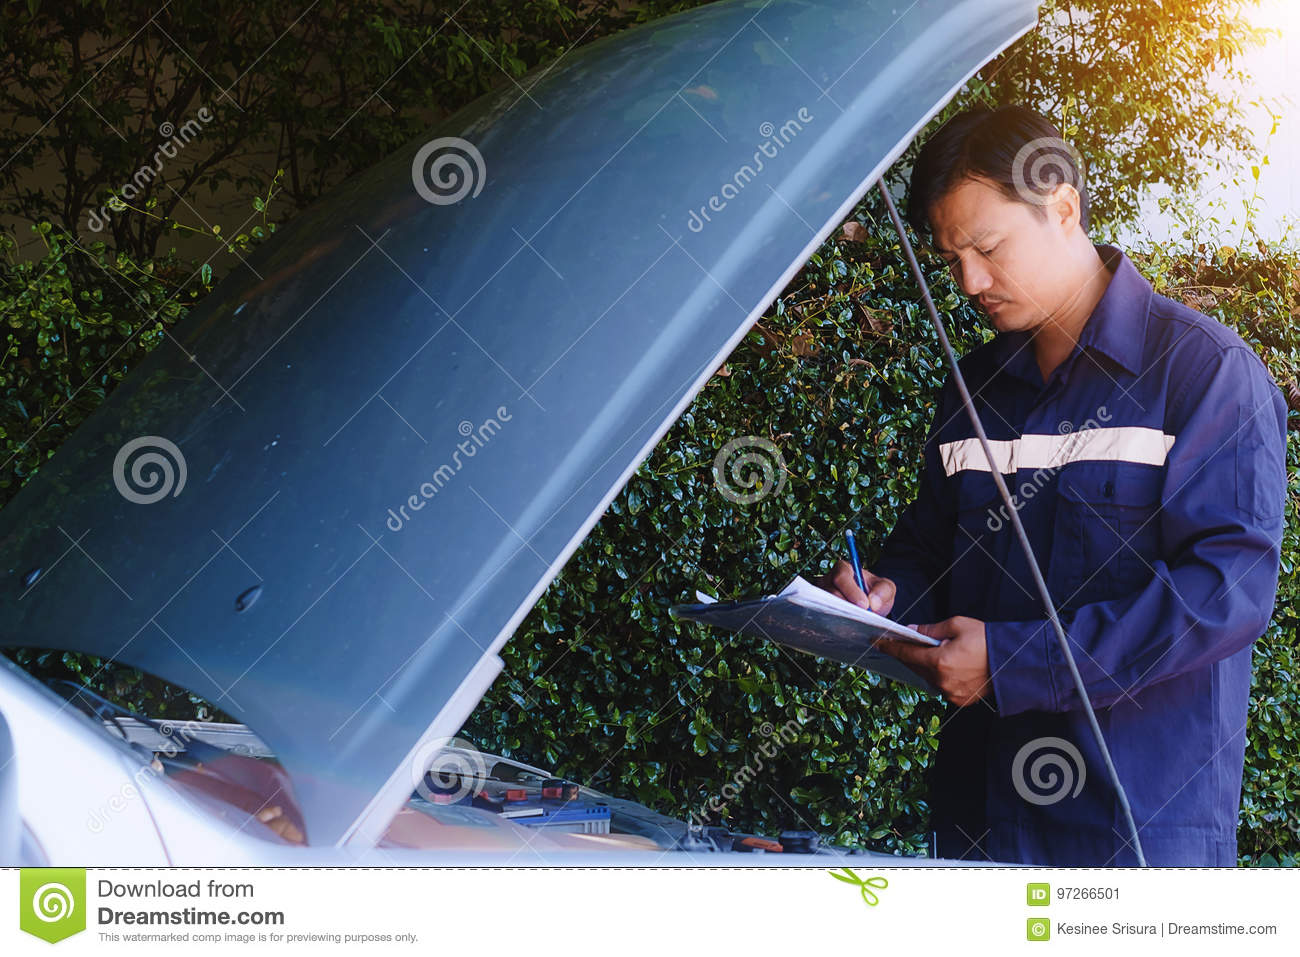 Man checking the list of items to repair the car